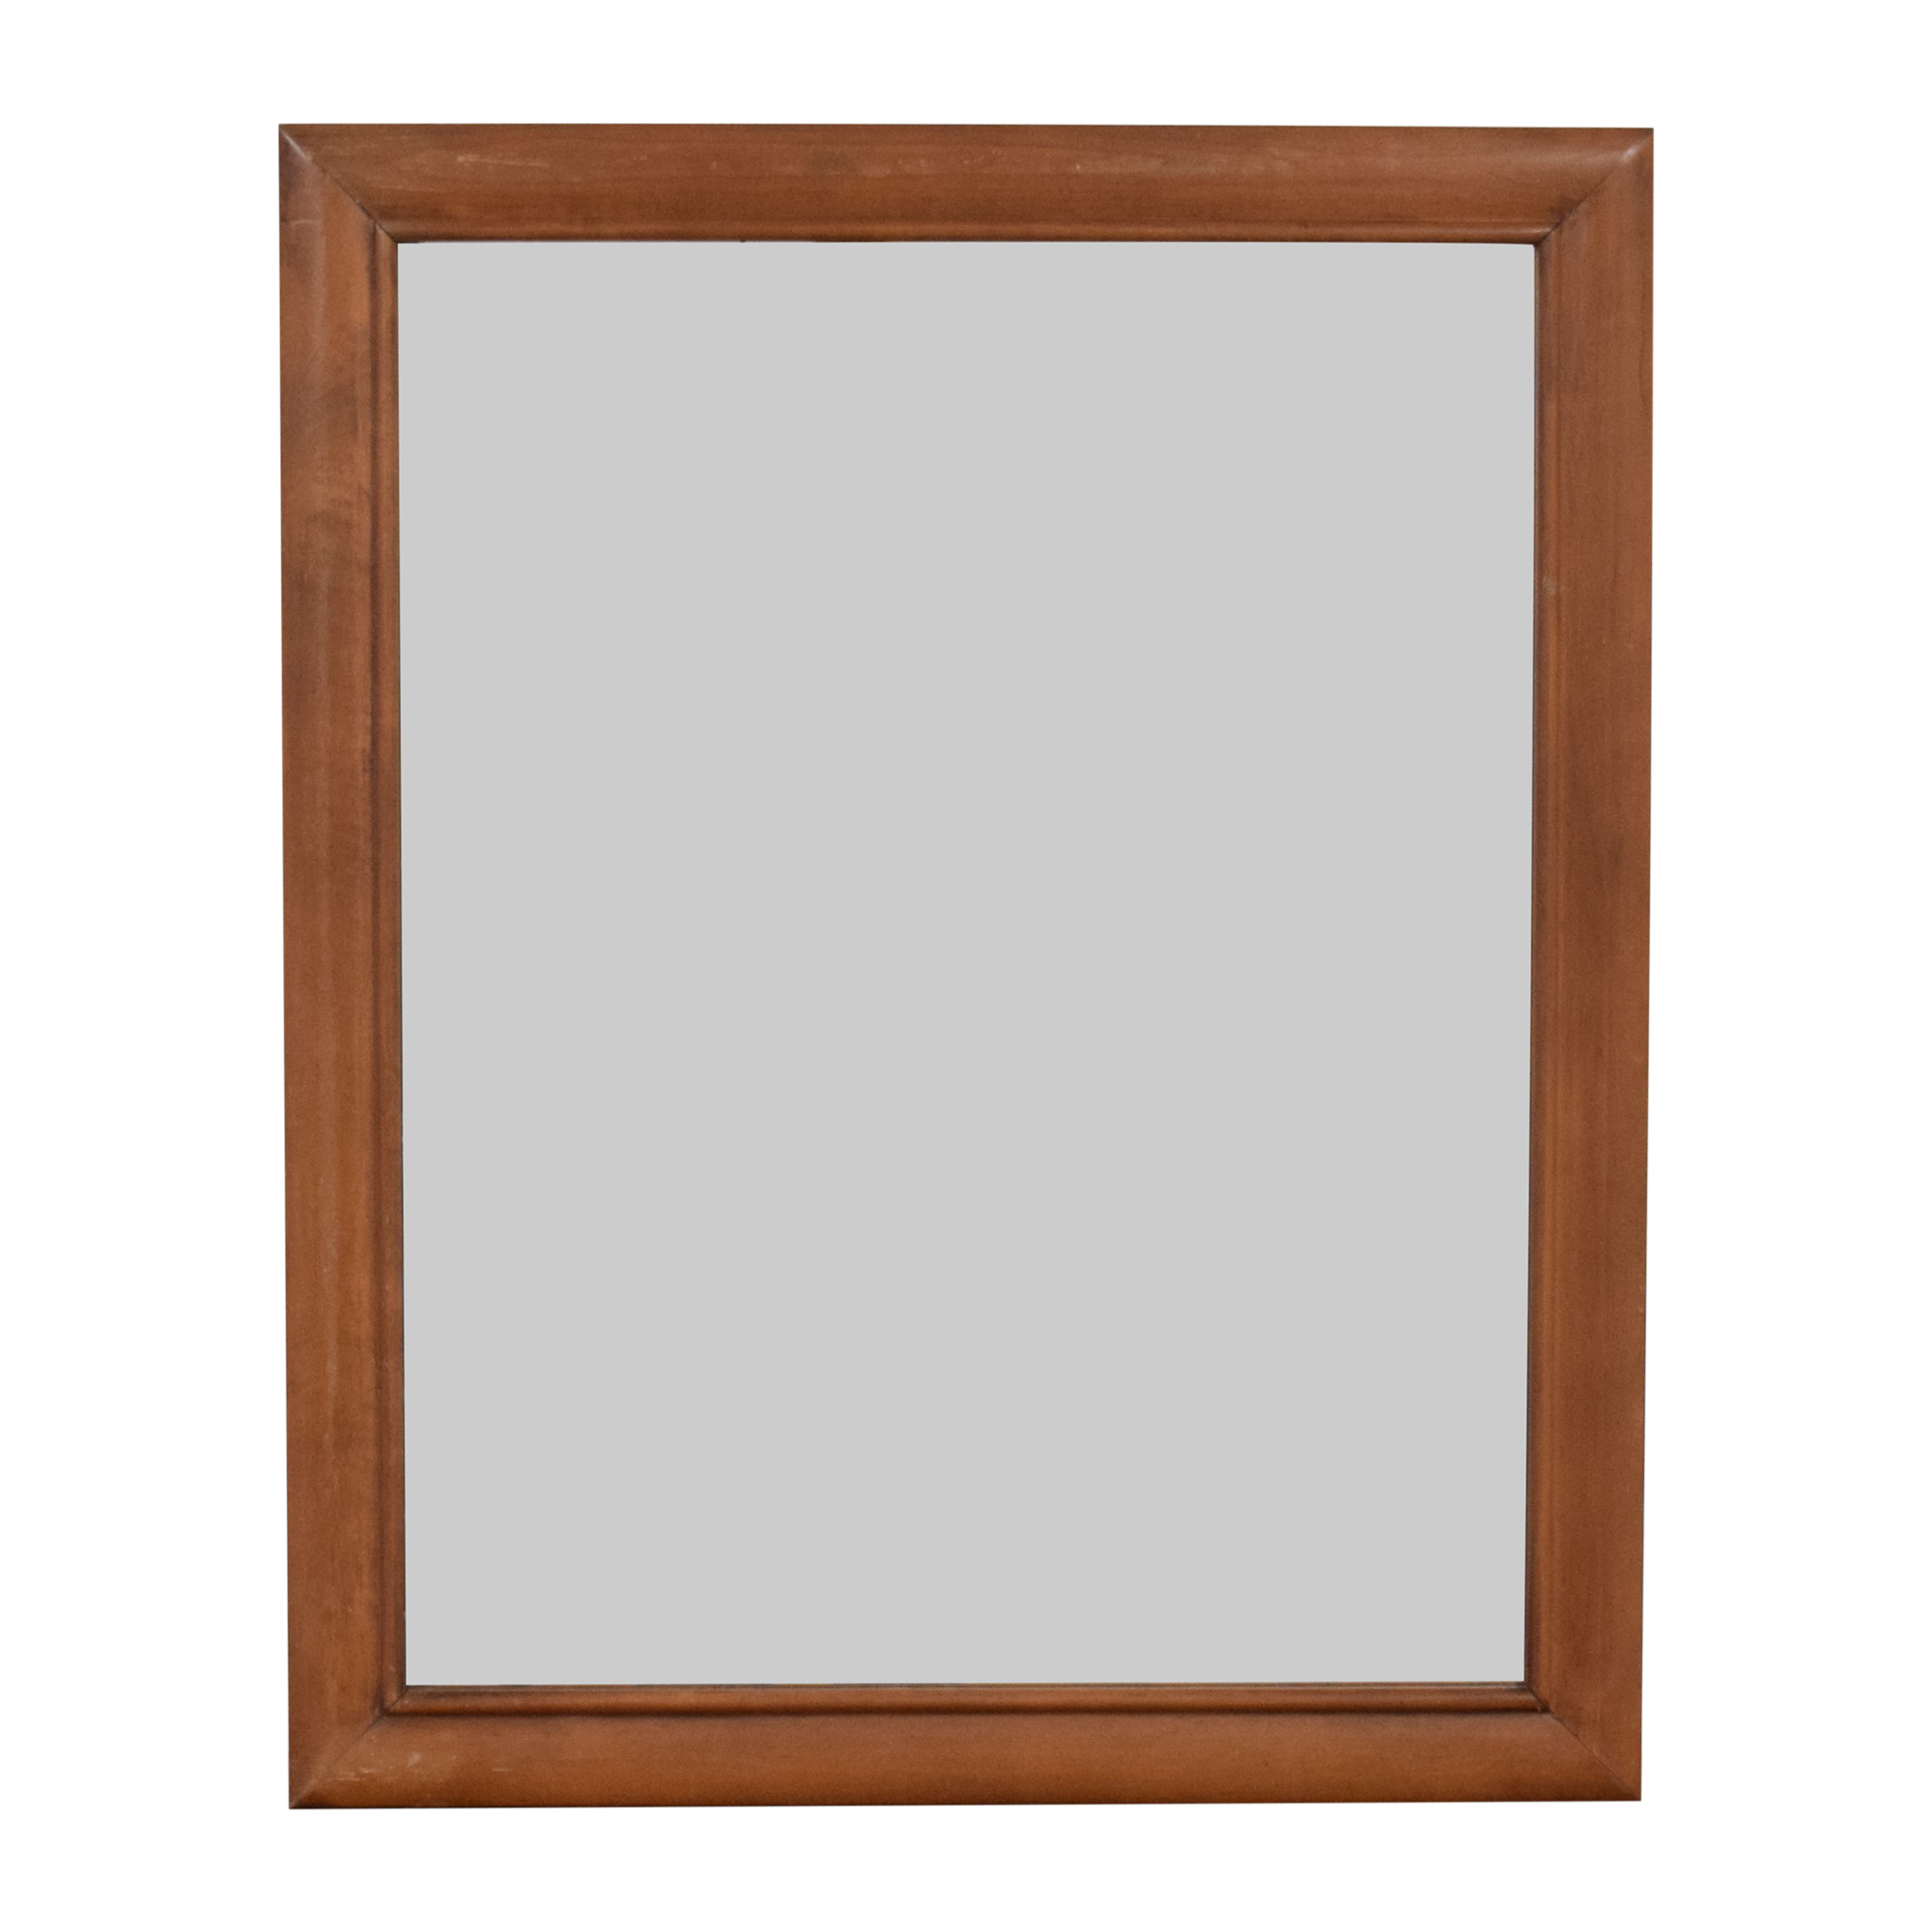 Framed Wall Mirror nj